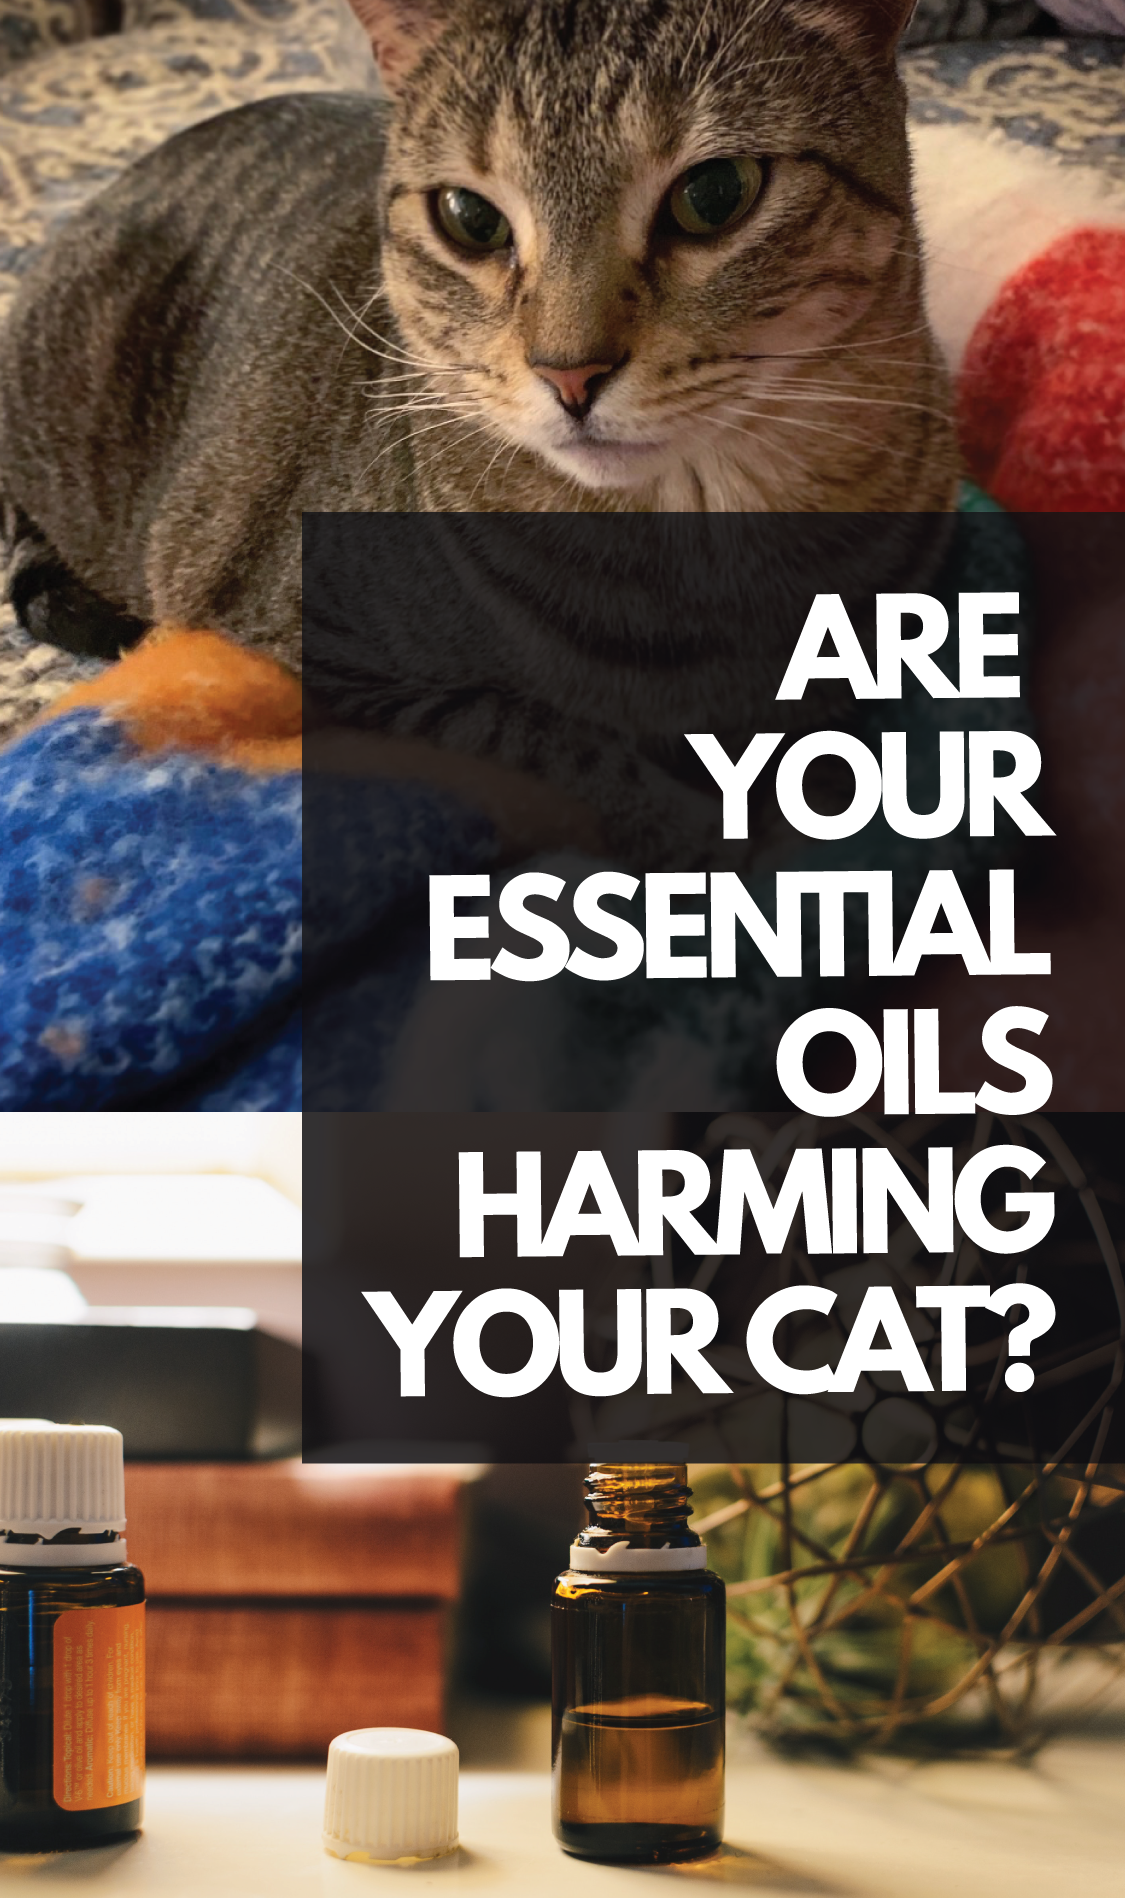 Essential oils are highly concentrated, and this is where the largest issue lies. Cats don't produce the correct liver enzymes to break down the concentration of essential oils. This means that essential oils, even in the smallest amounts, will build up in their system and poison them.